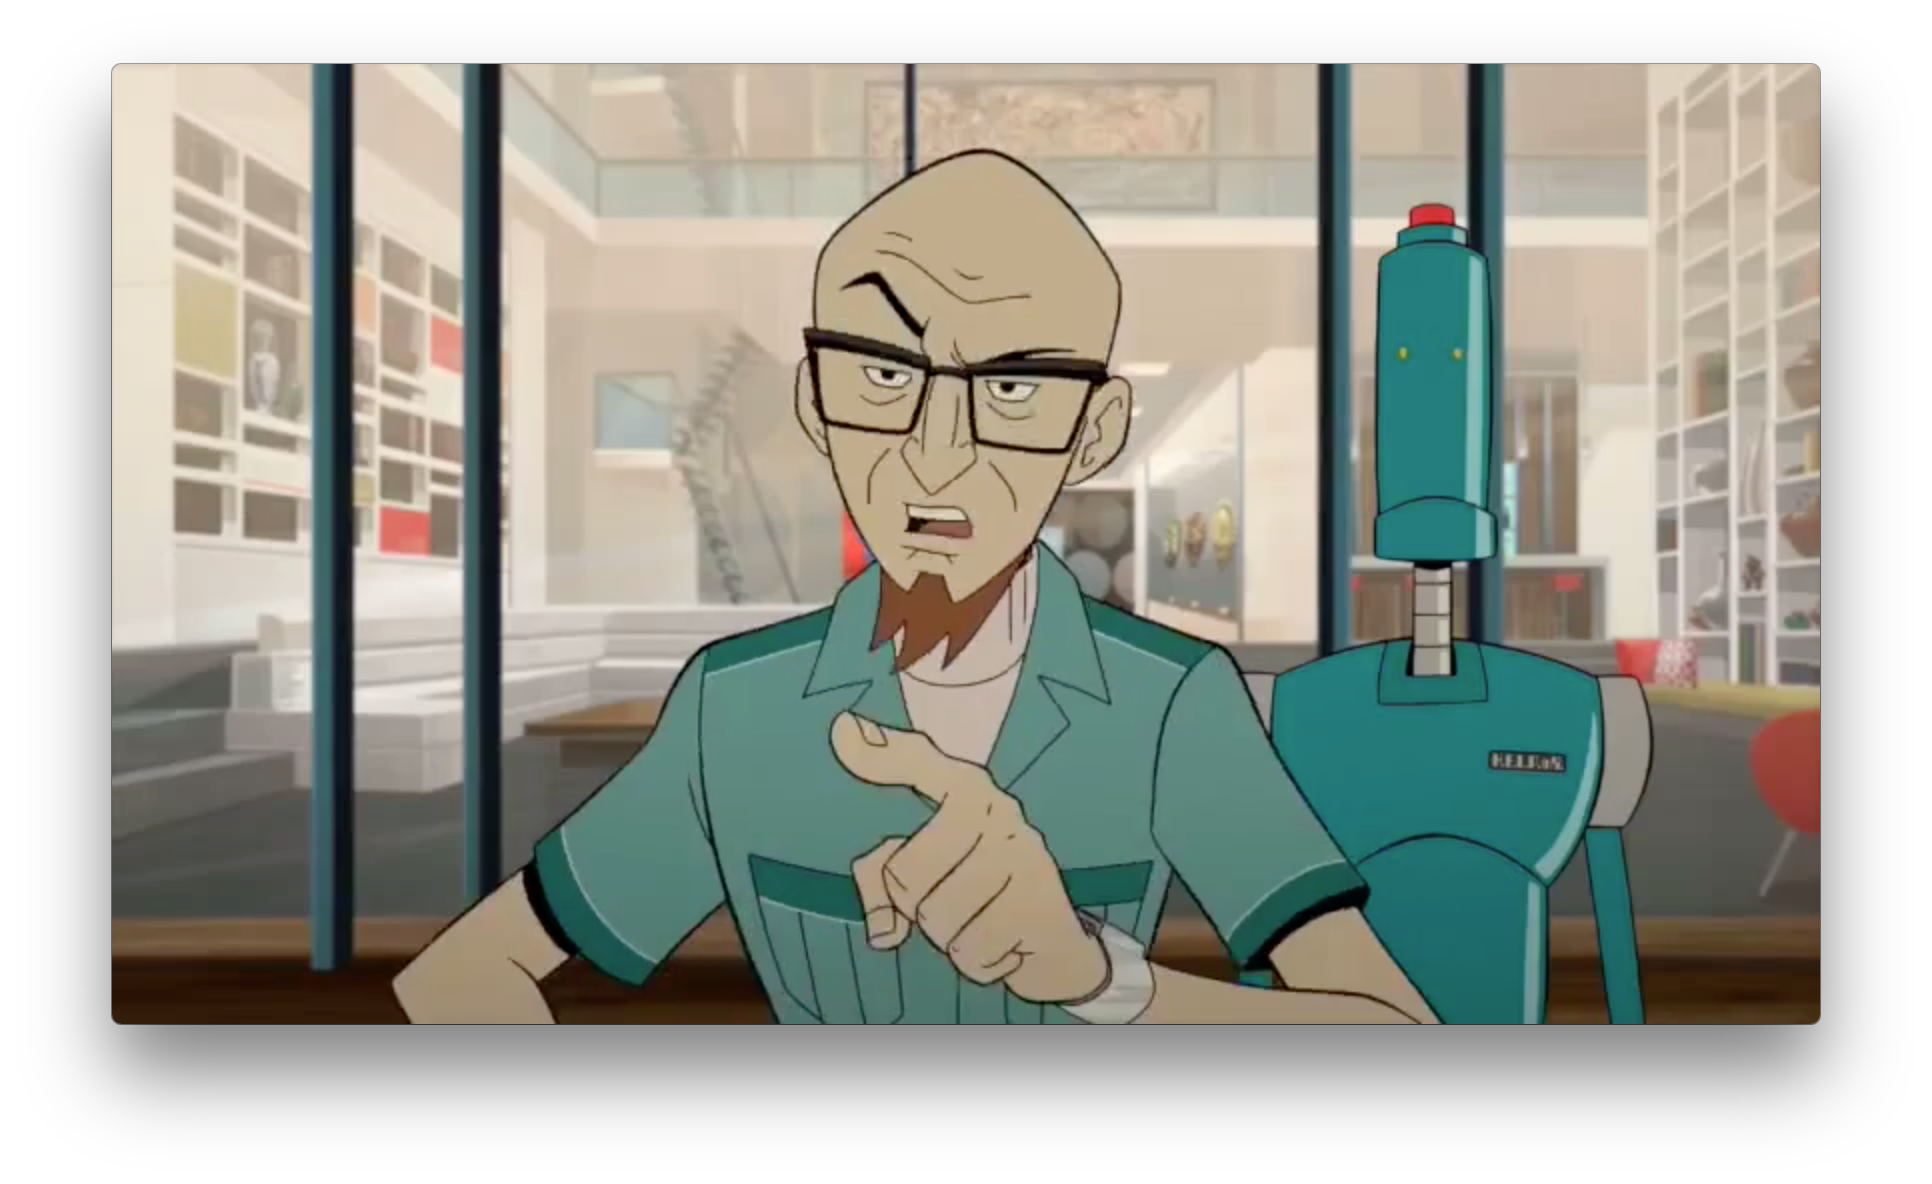 Dr. Venture scolds someone in front of a fancy house. This might be the new Venture house, as it shows up in several different shots. His communicator watch looks upgraded as well, not to mention the new speedsuit.